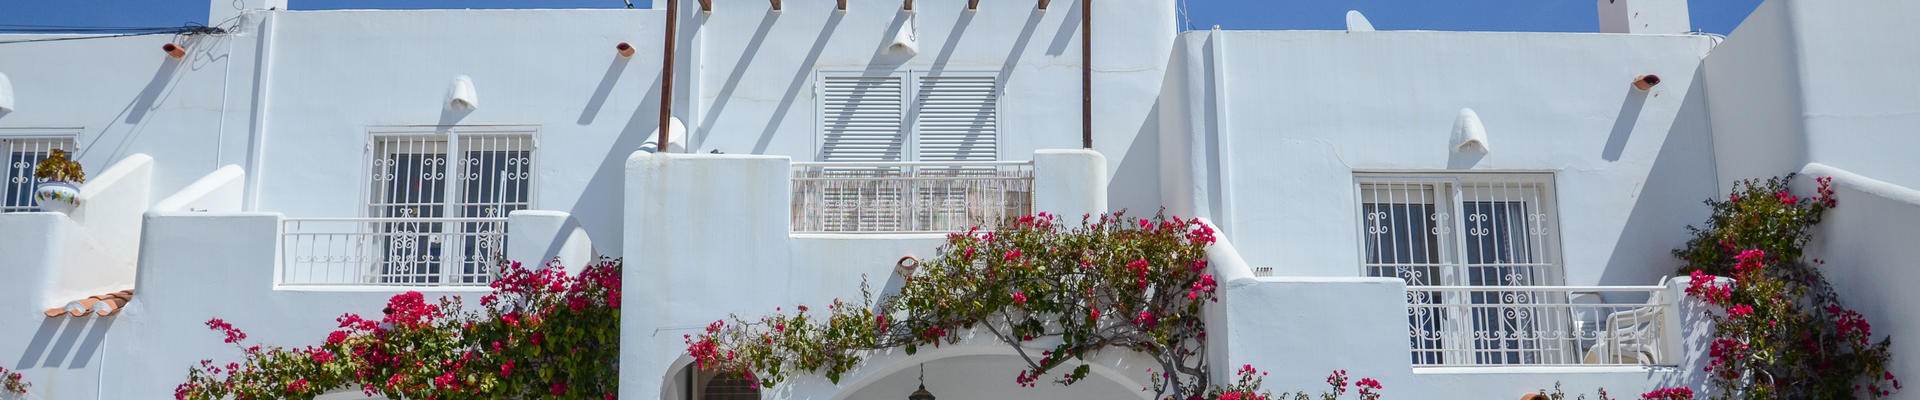 LV771: 2 Bedroom Townhouse for Sale